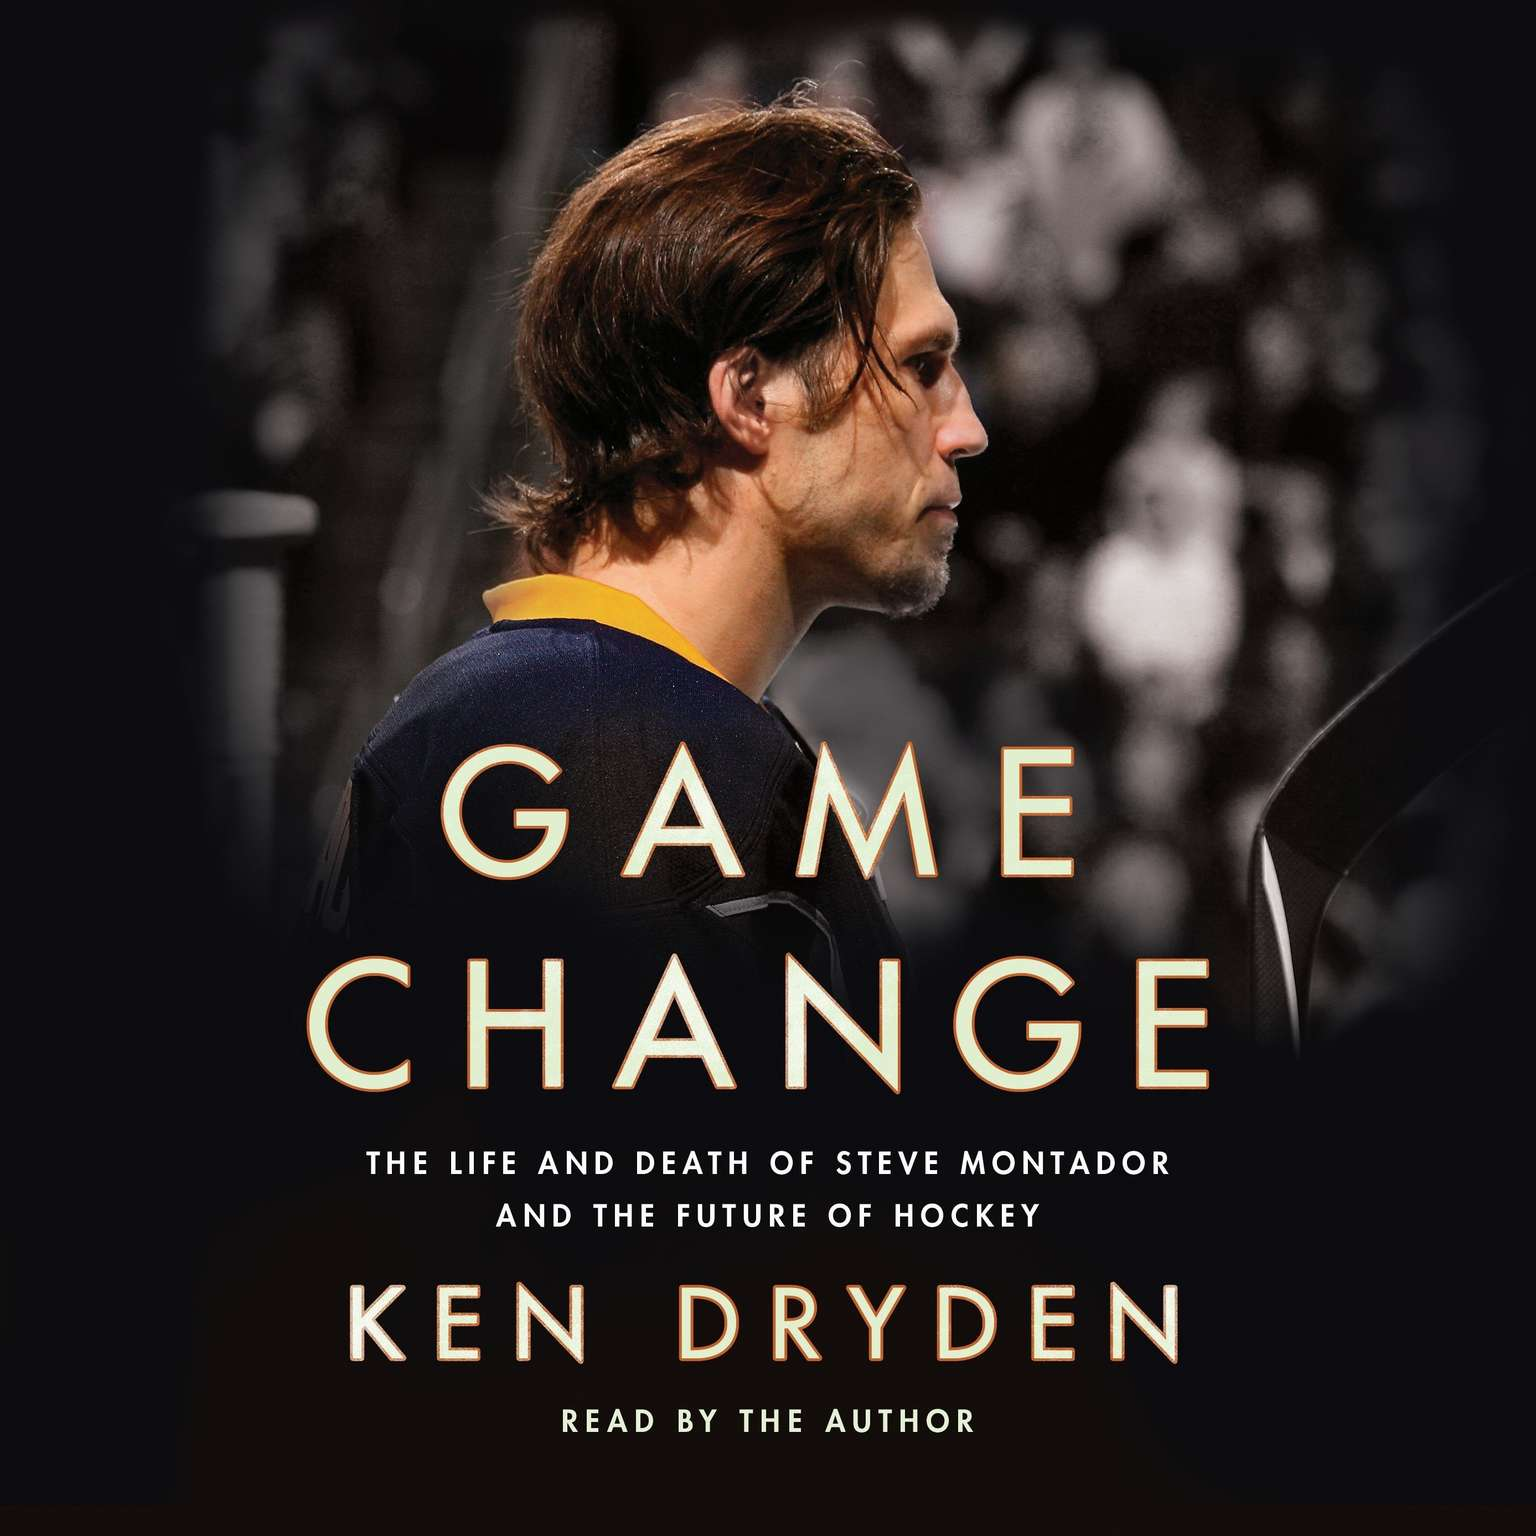 Game Change: The Life and Death of Steve Montador, and the Future of Hockey Audiobook, by Ken Dryden